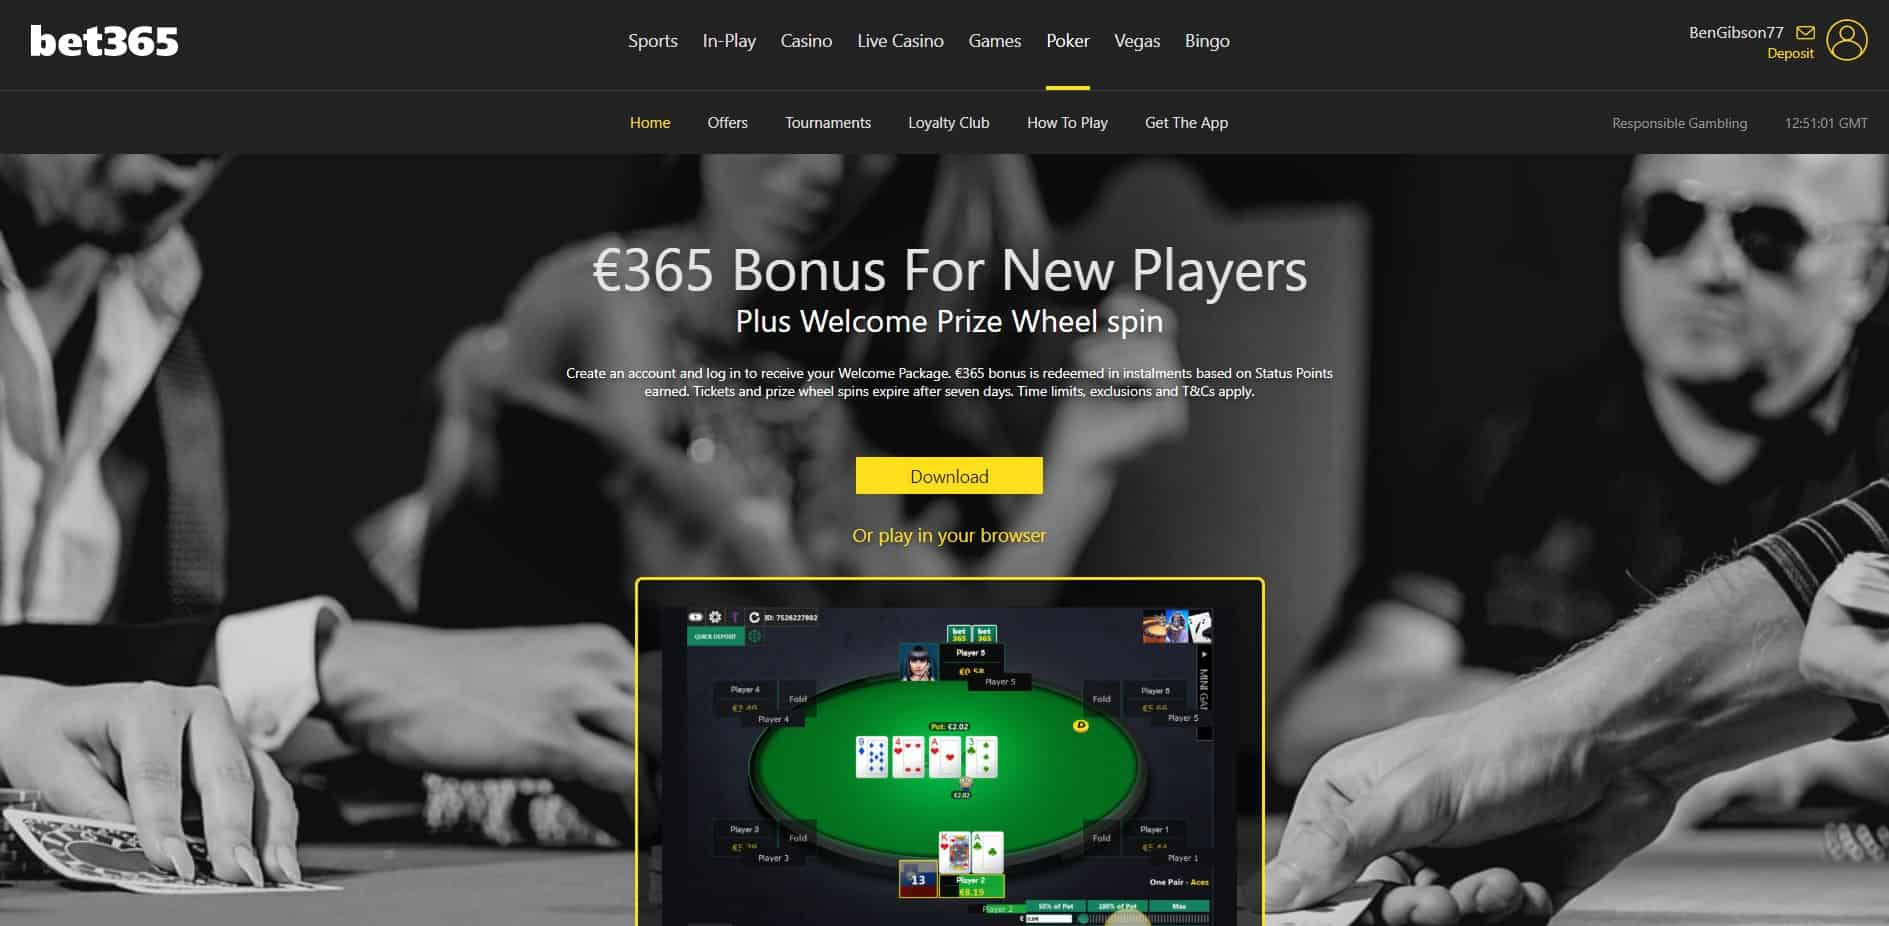 Bet365 Poker Homepage Bet365 Sports Review